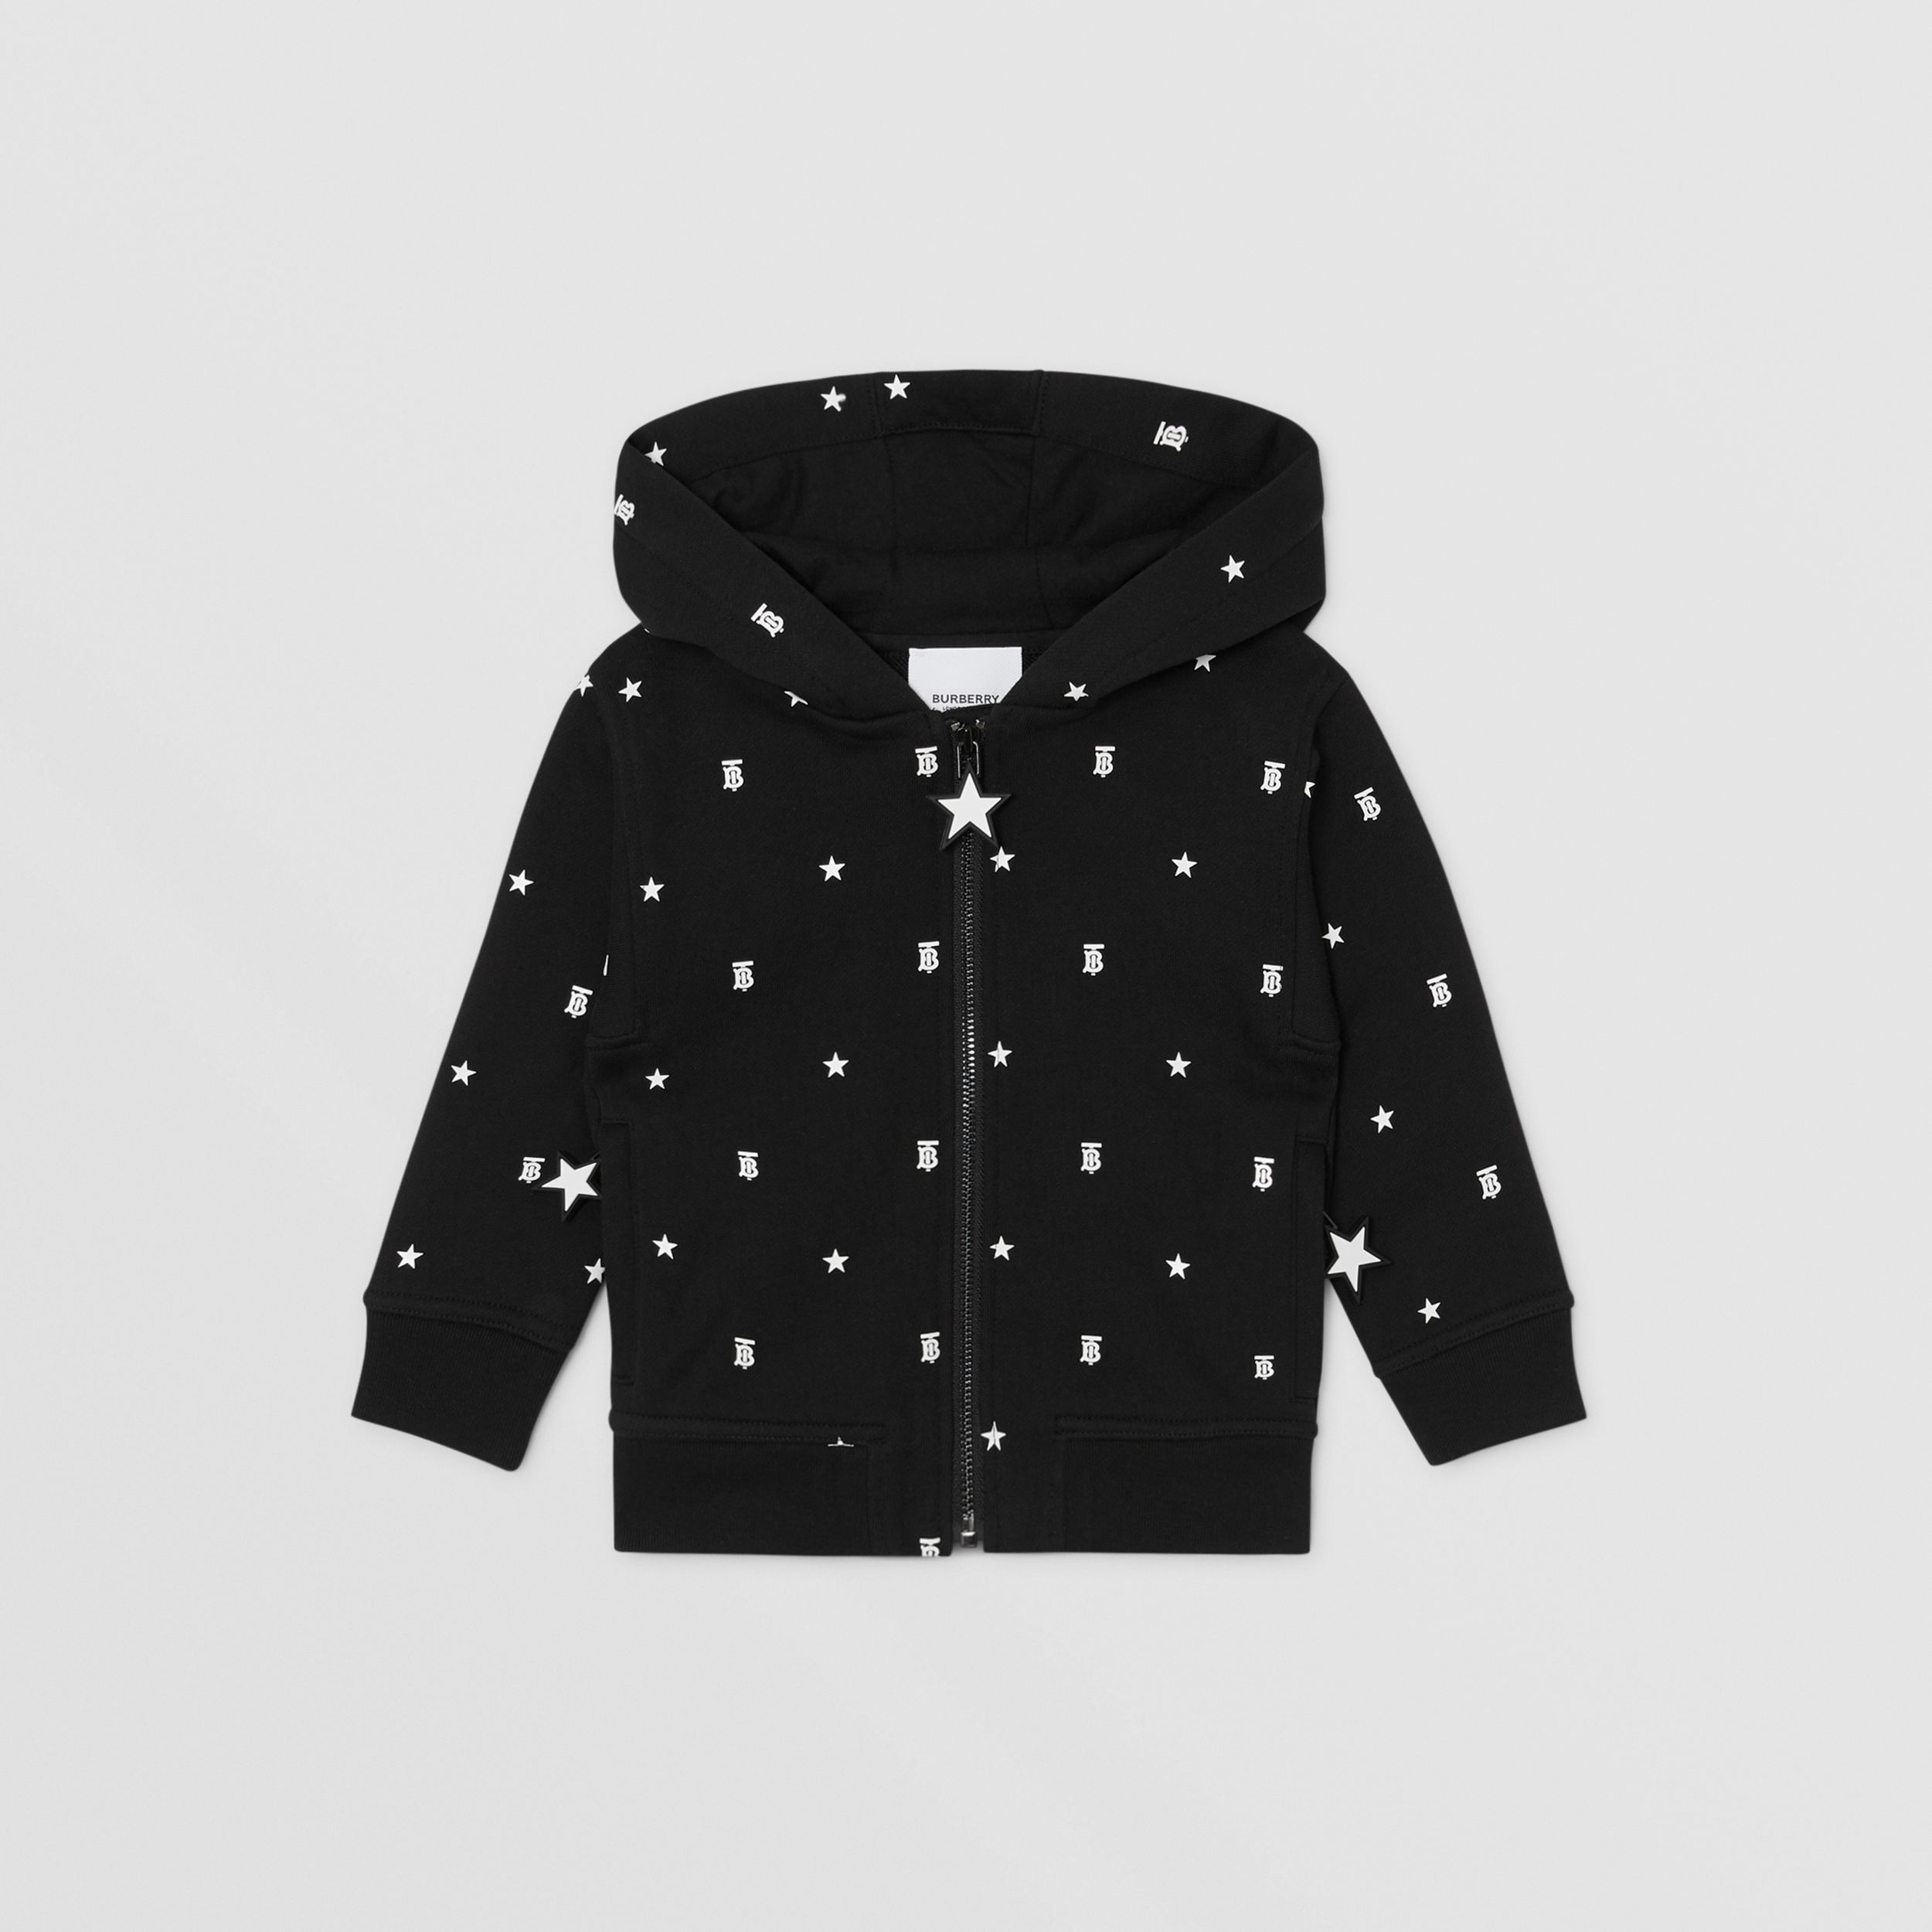 Star and Monogram Motif Cotton Hooded Top in Black - Children | Burberry - 1